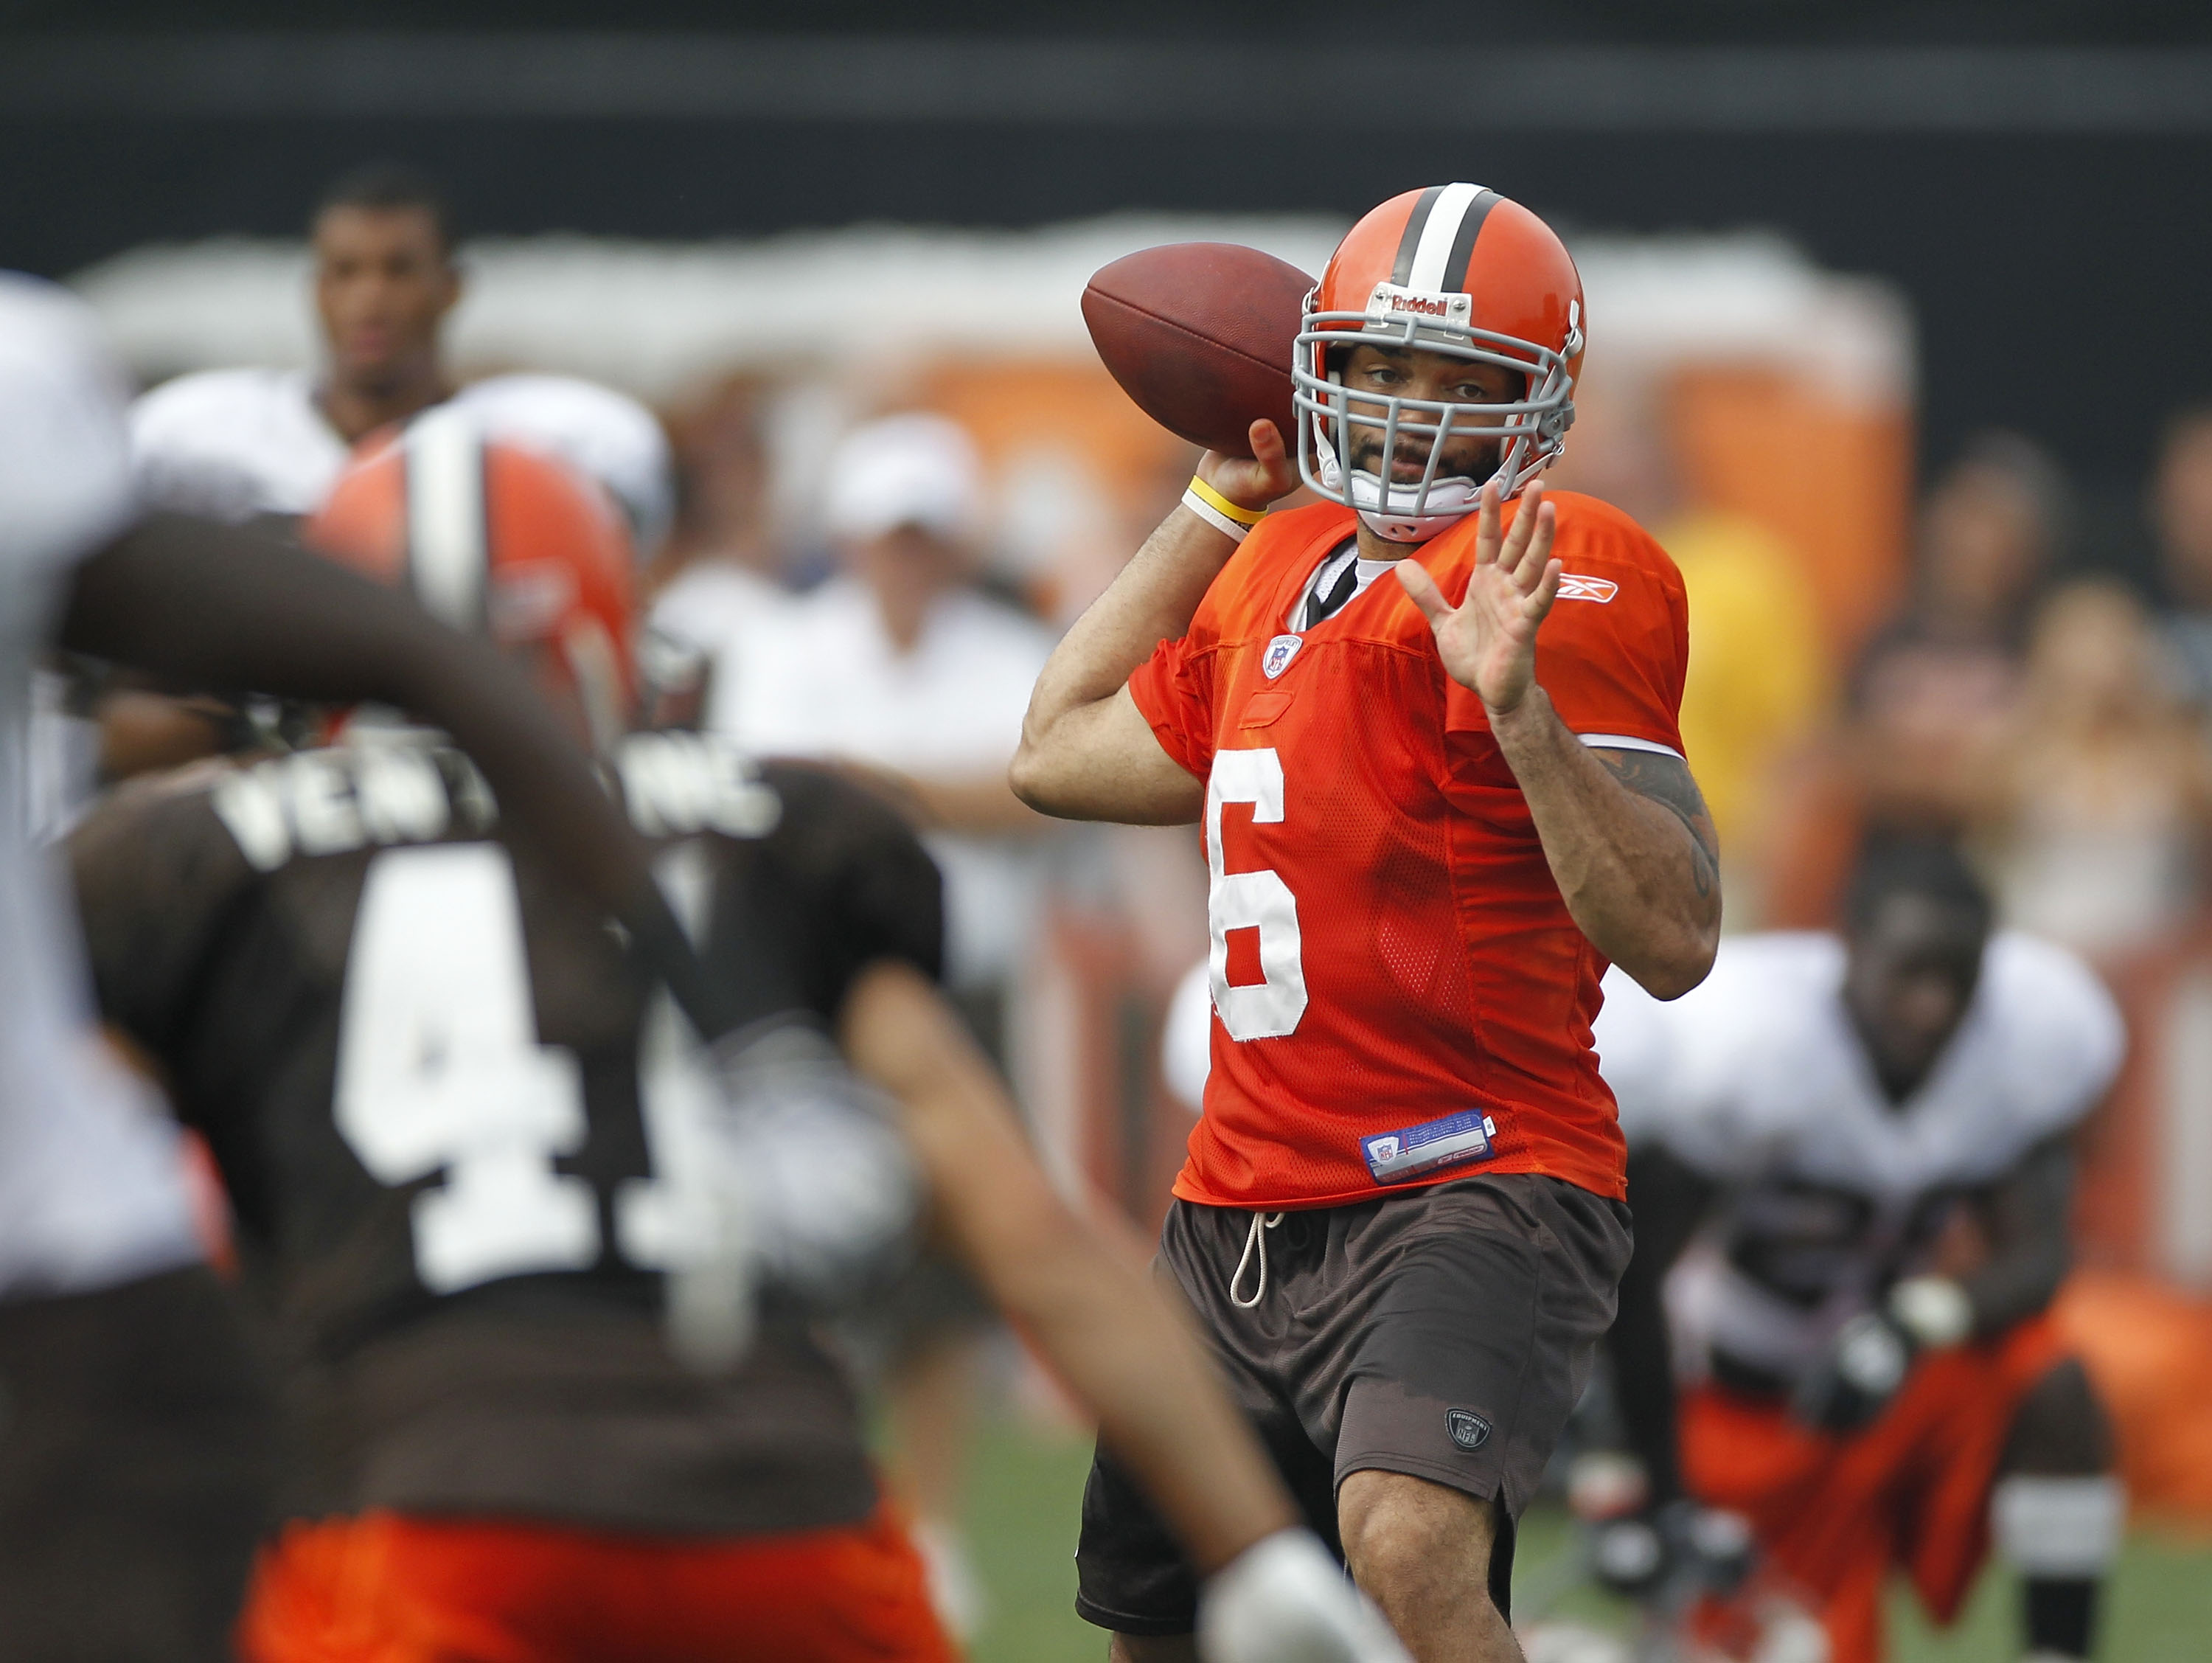 BEREA, OH - AUGUST 04:  Seneca Wallace #6 of the Cleveland Browns gets ready to throw a pass during training camp at the Cleveland Browns Training and Administrative Complex on August 4, 2010 in Berea, Ohio.  (Photo by Gregory Shamus/Getty Images)